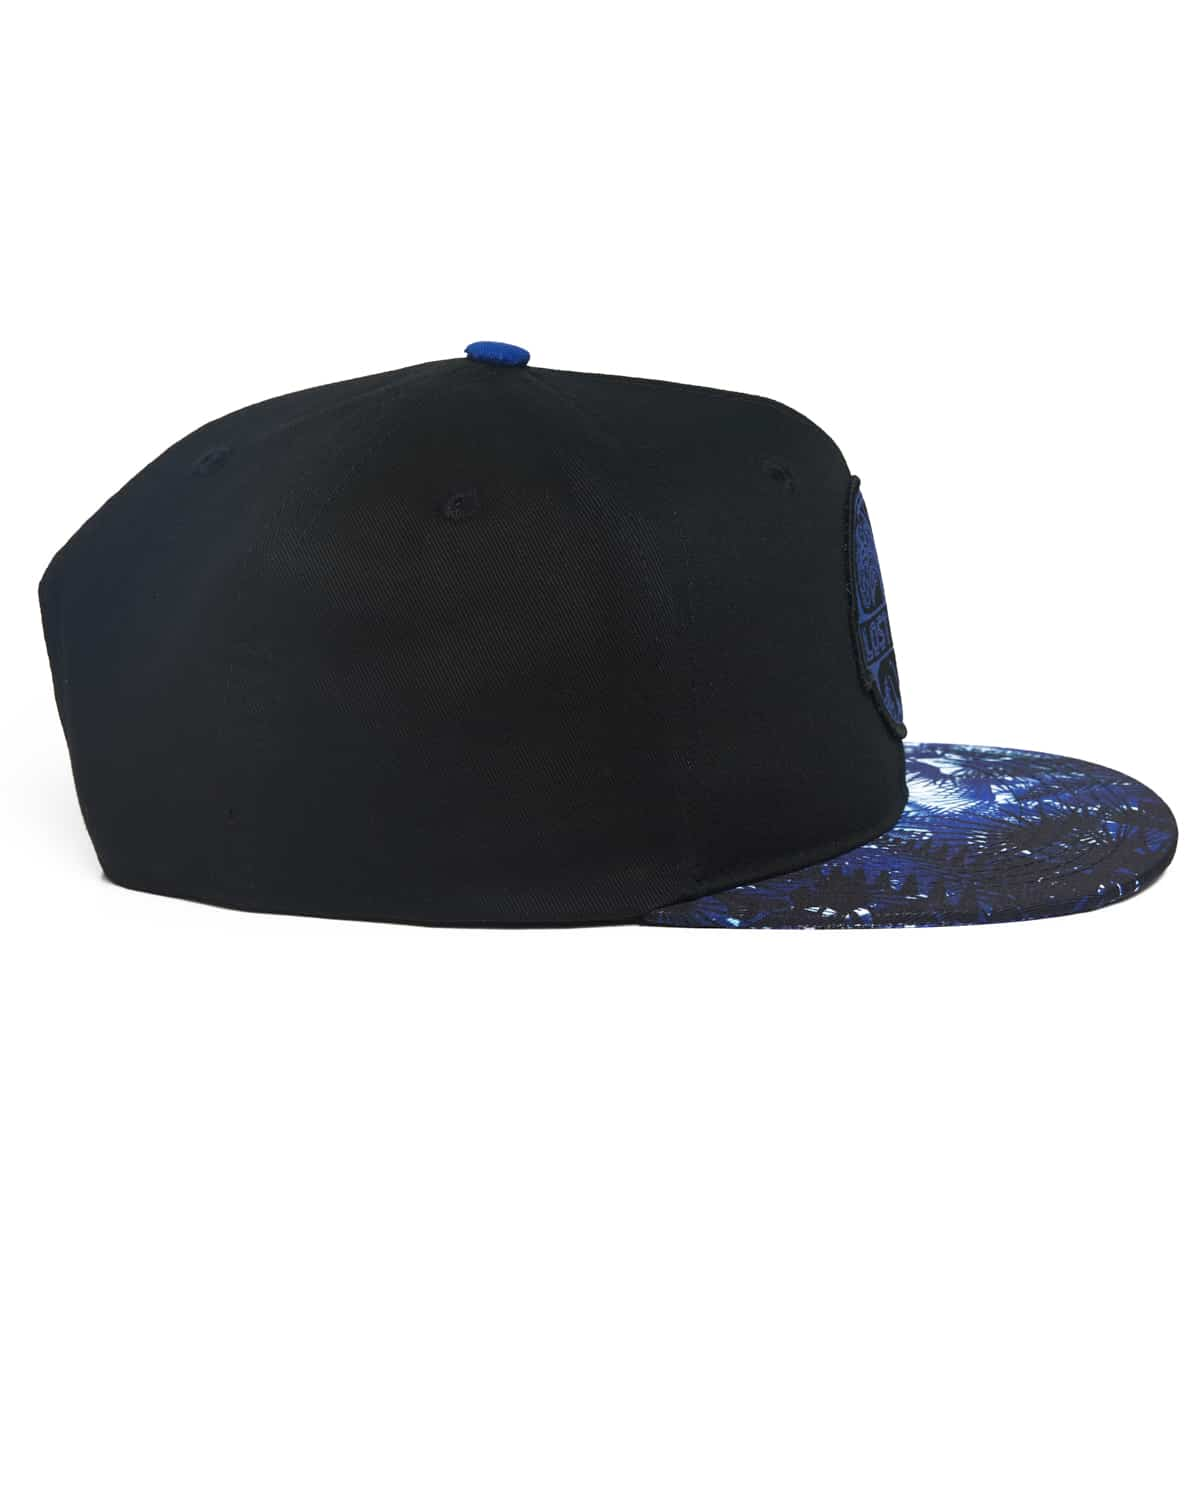 Lost Lands 'Tree of Life' Snapback (Black/Blue)